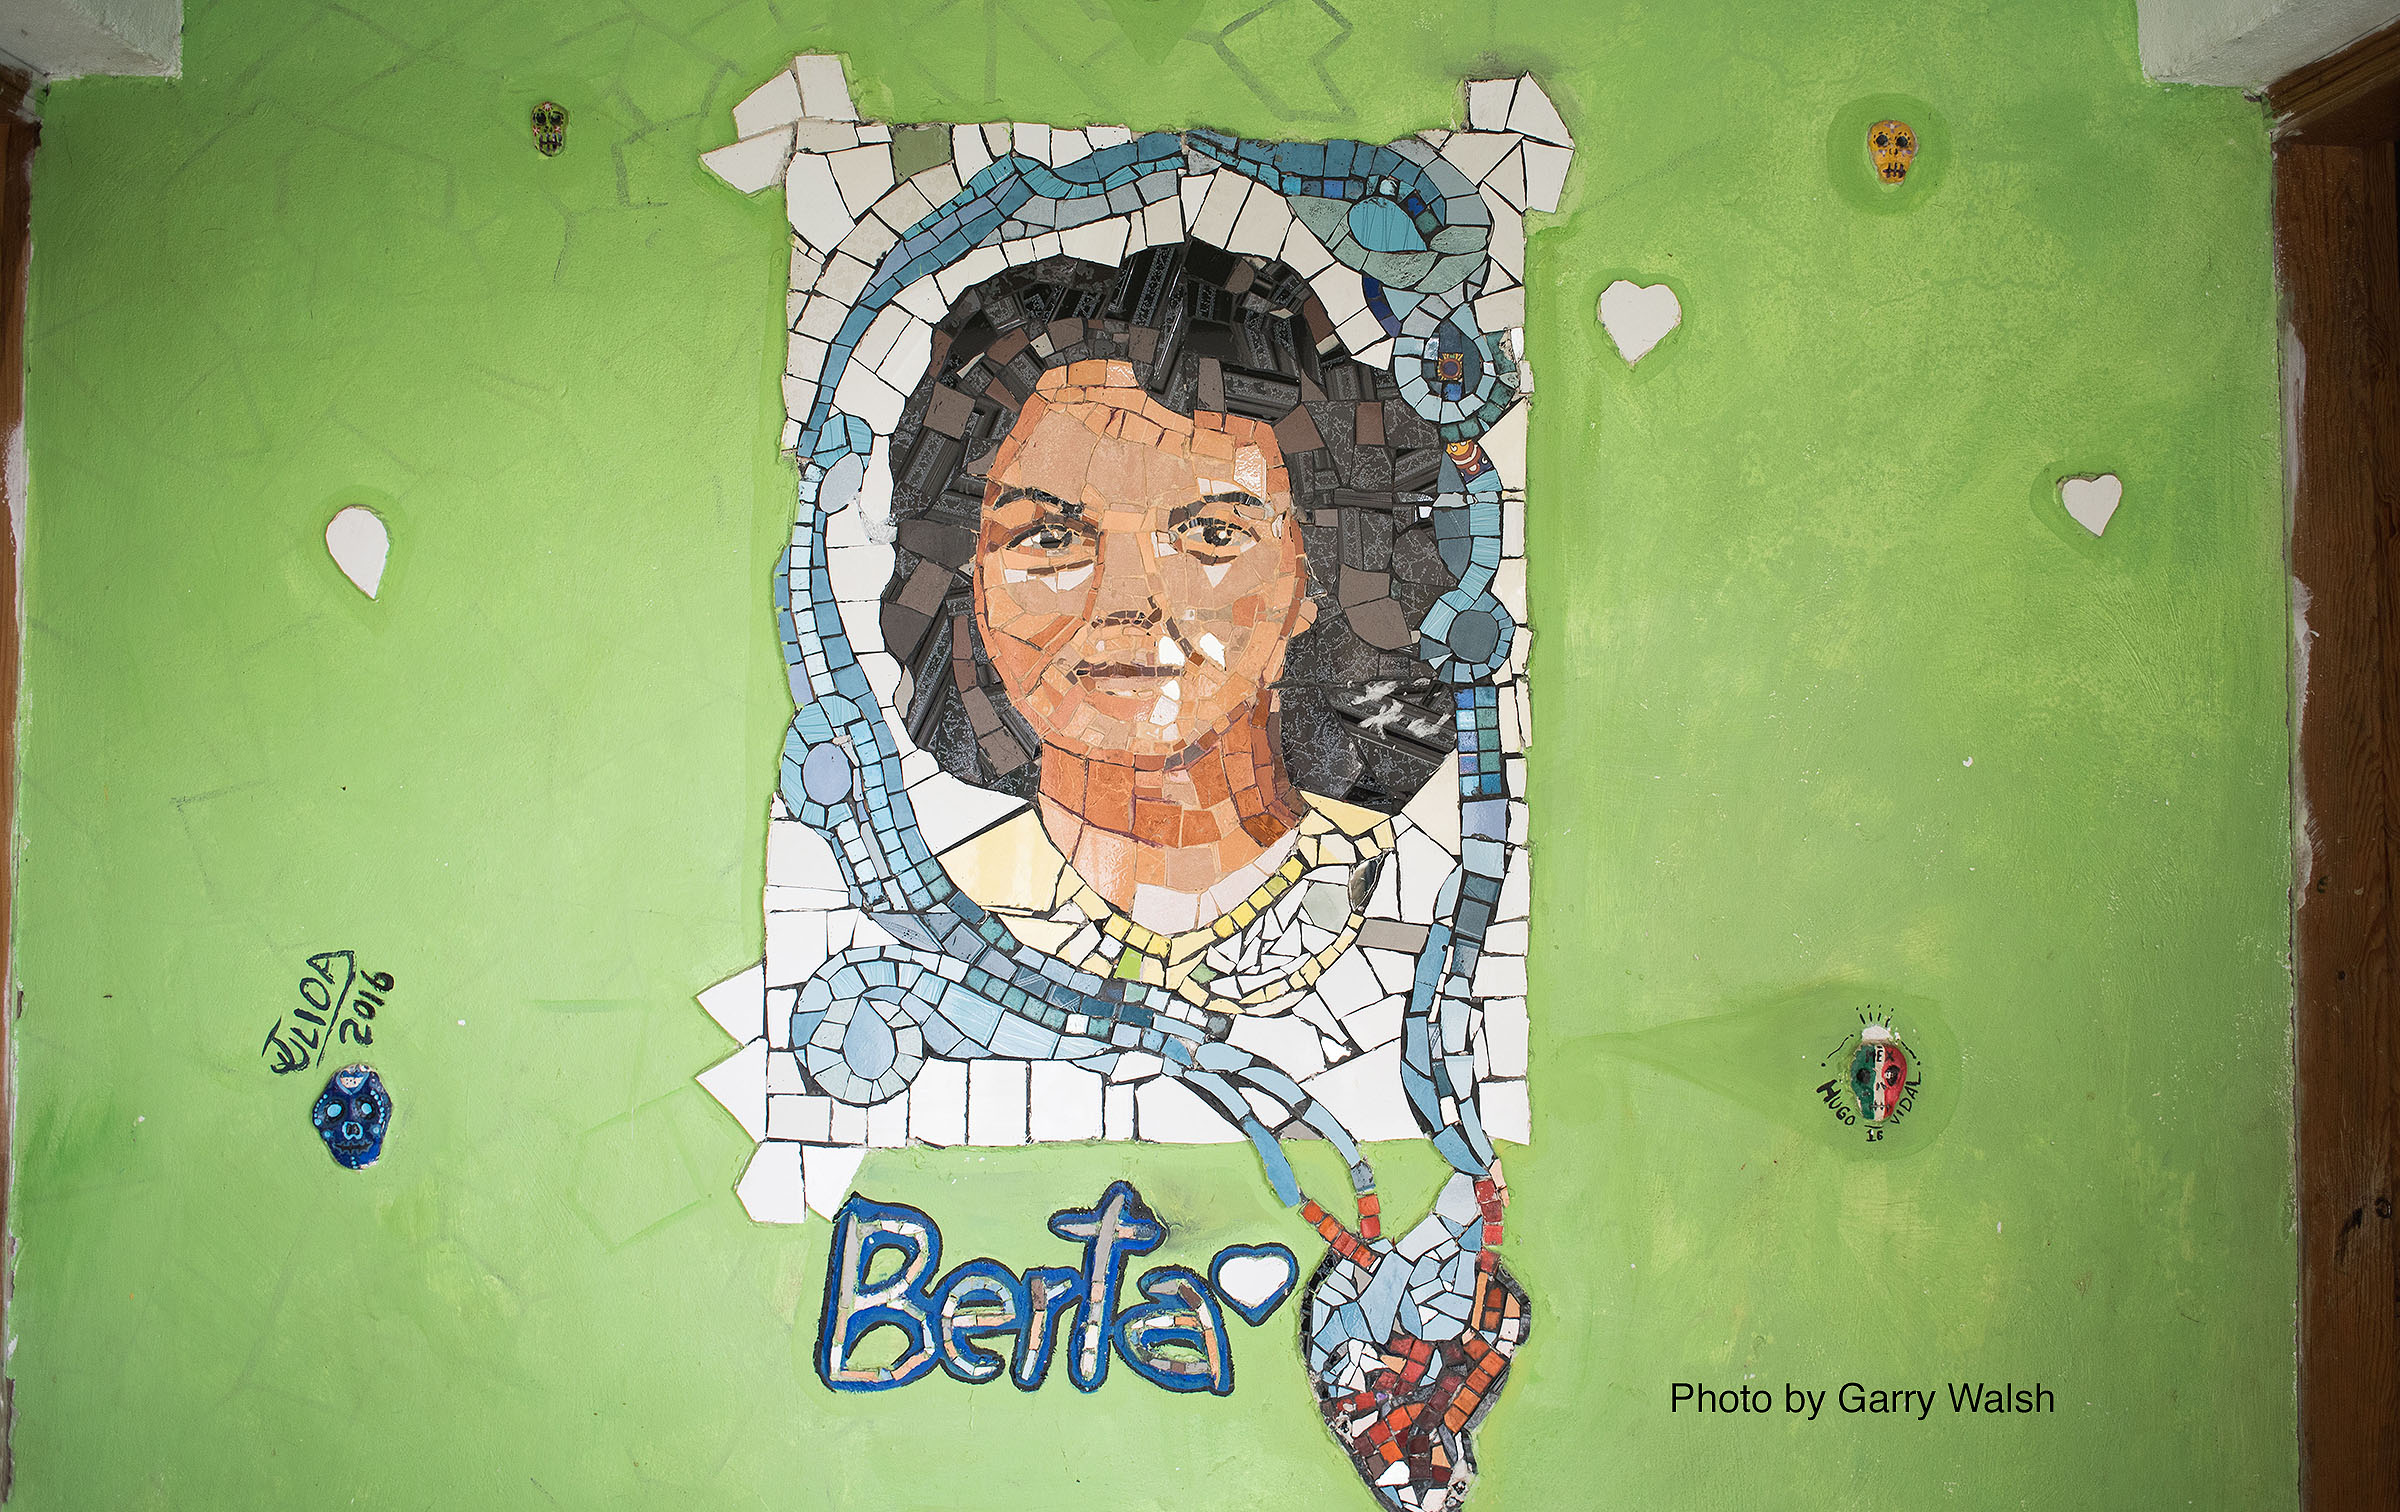 mural of human rights defender Berta Caceres